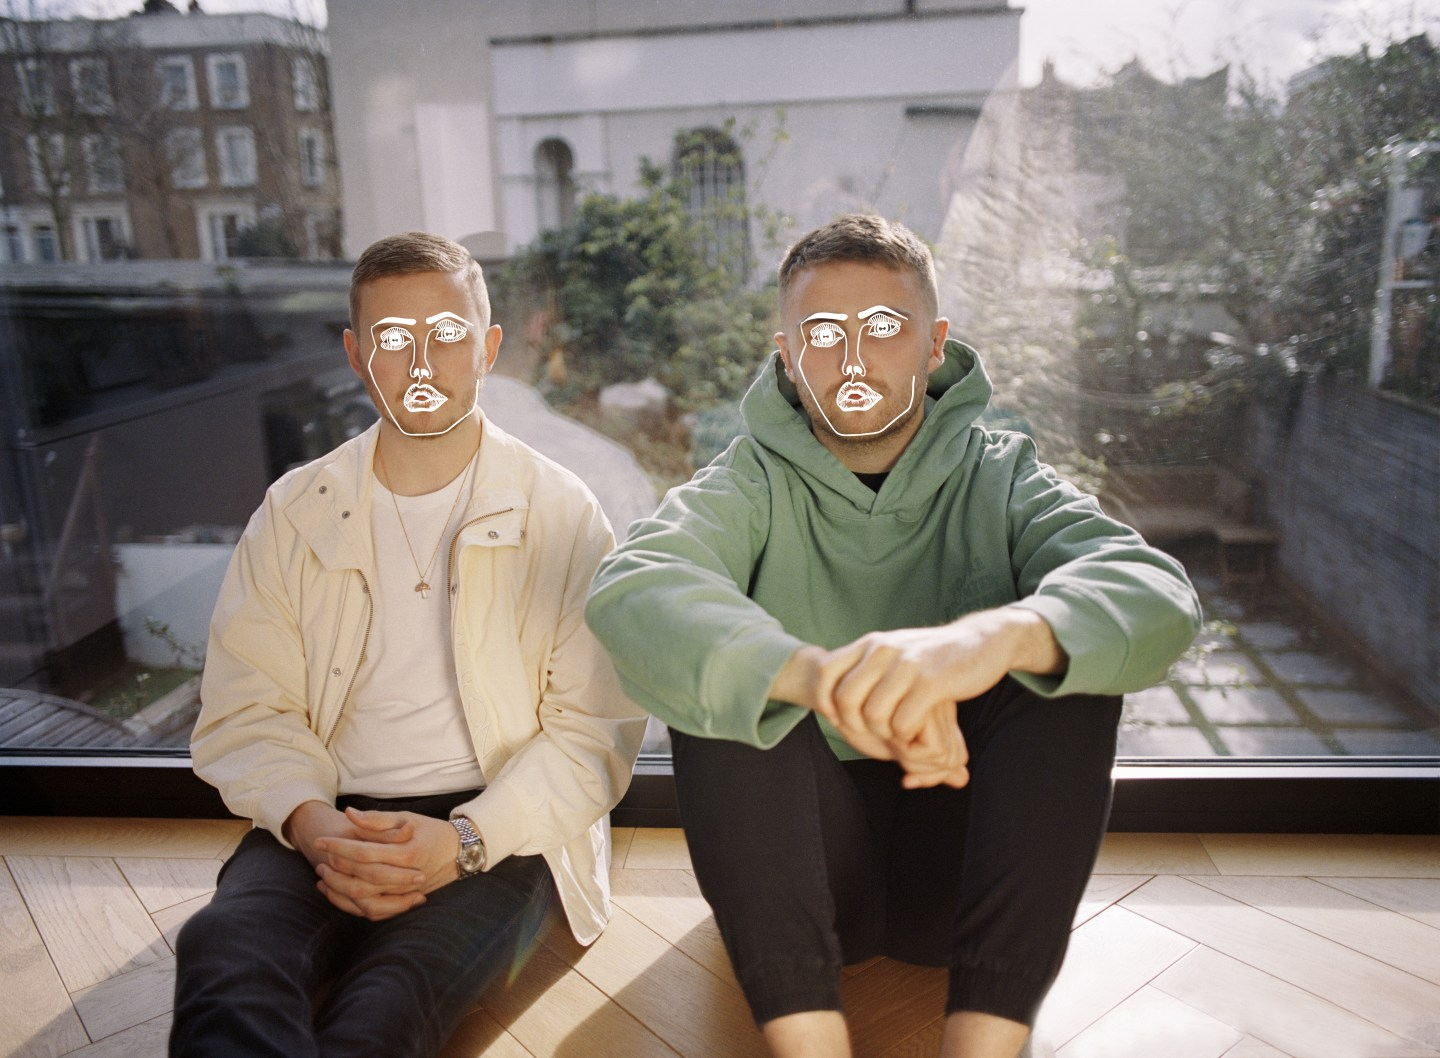 Disclosure brothers pose against outdoor UK background